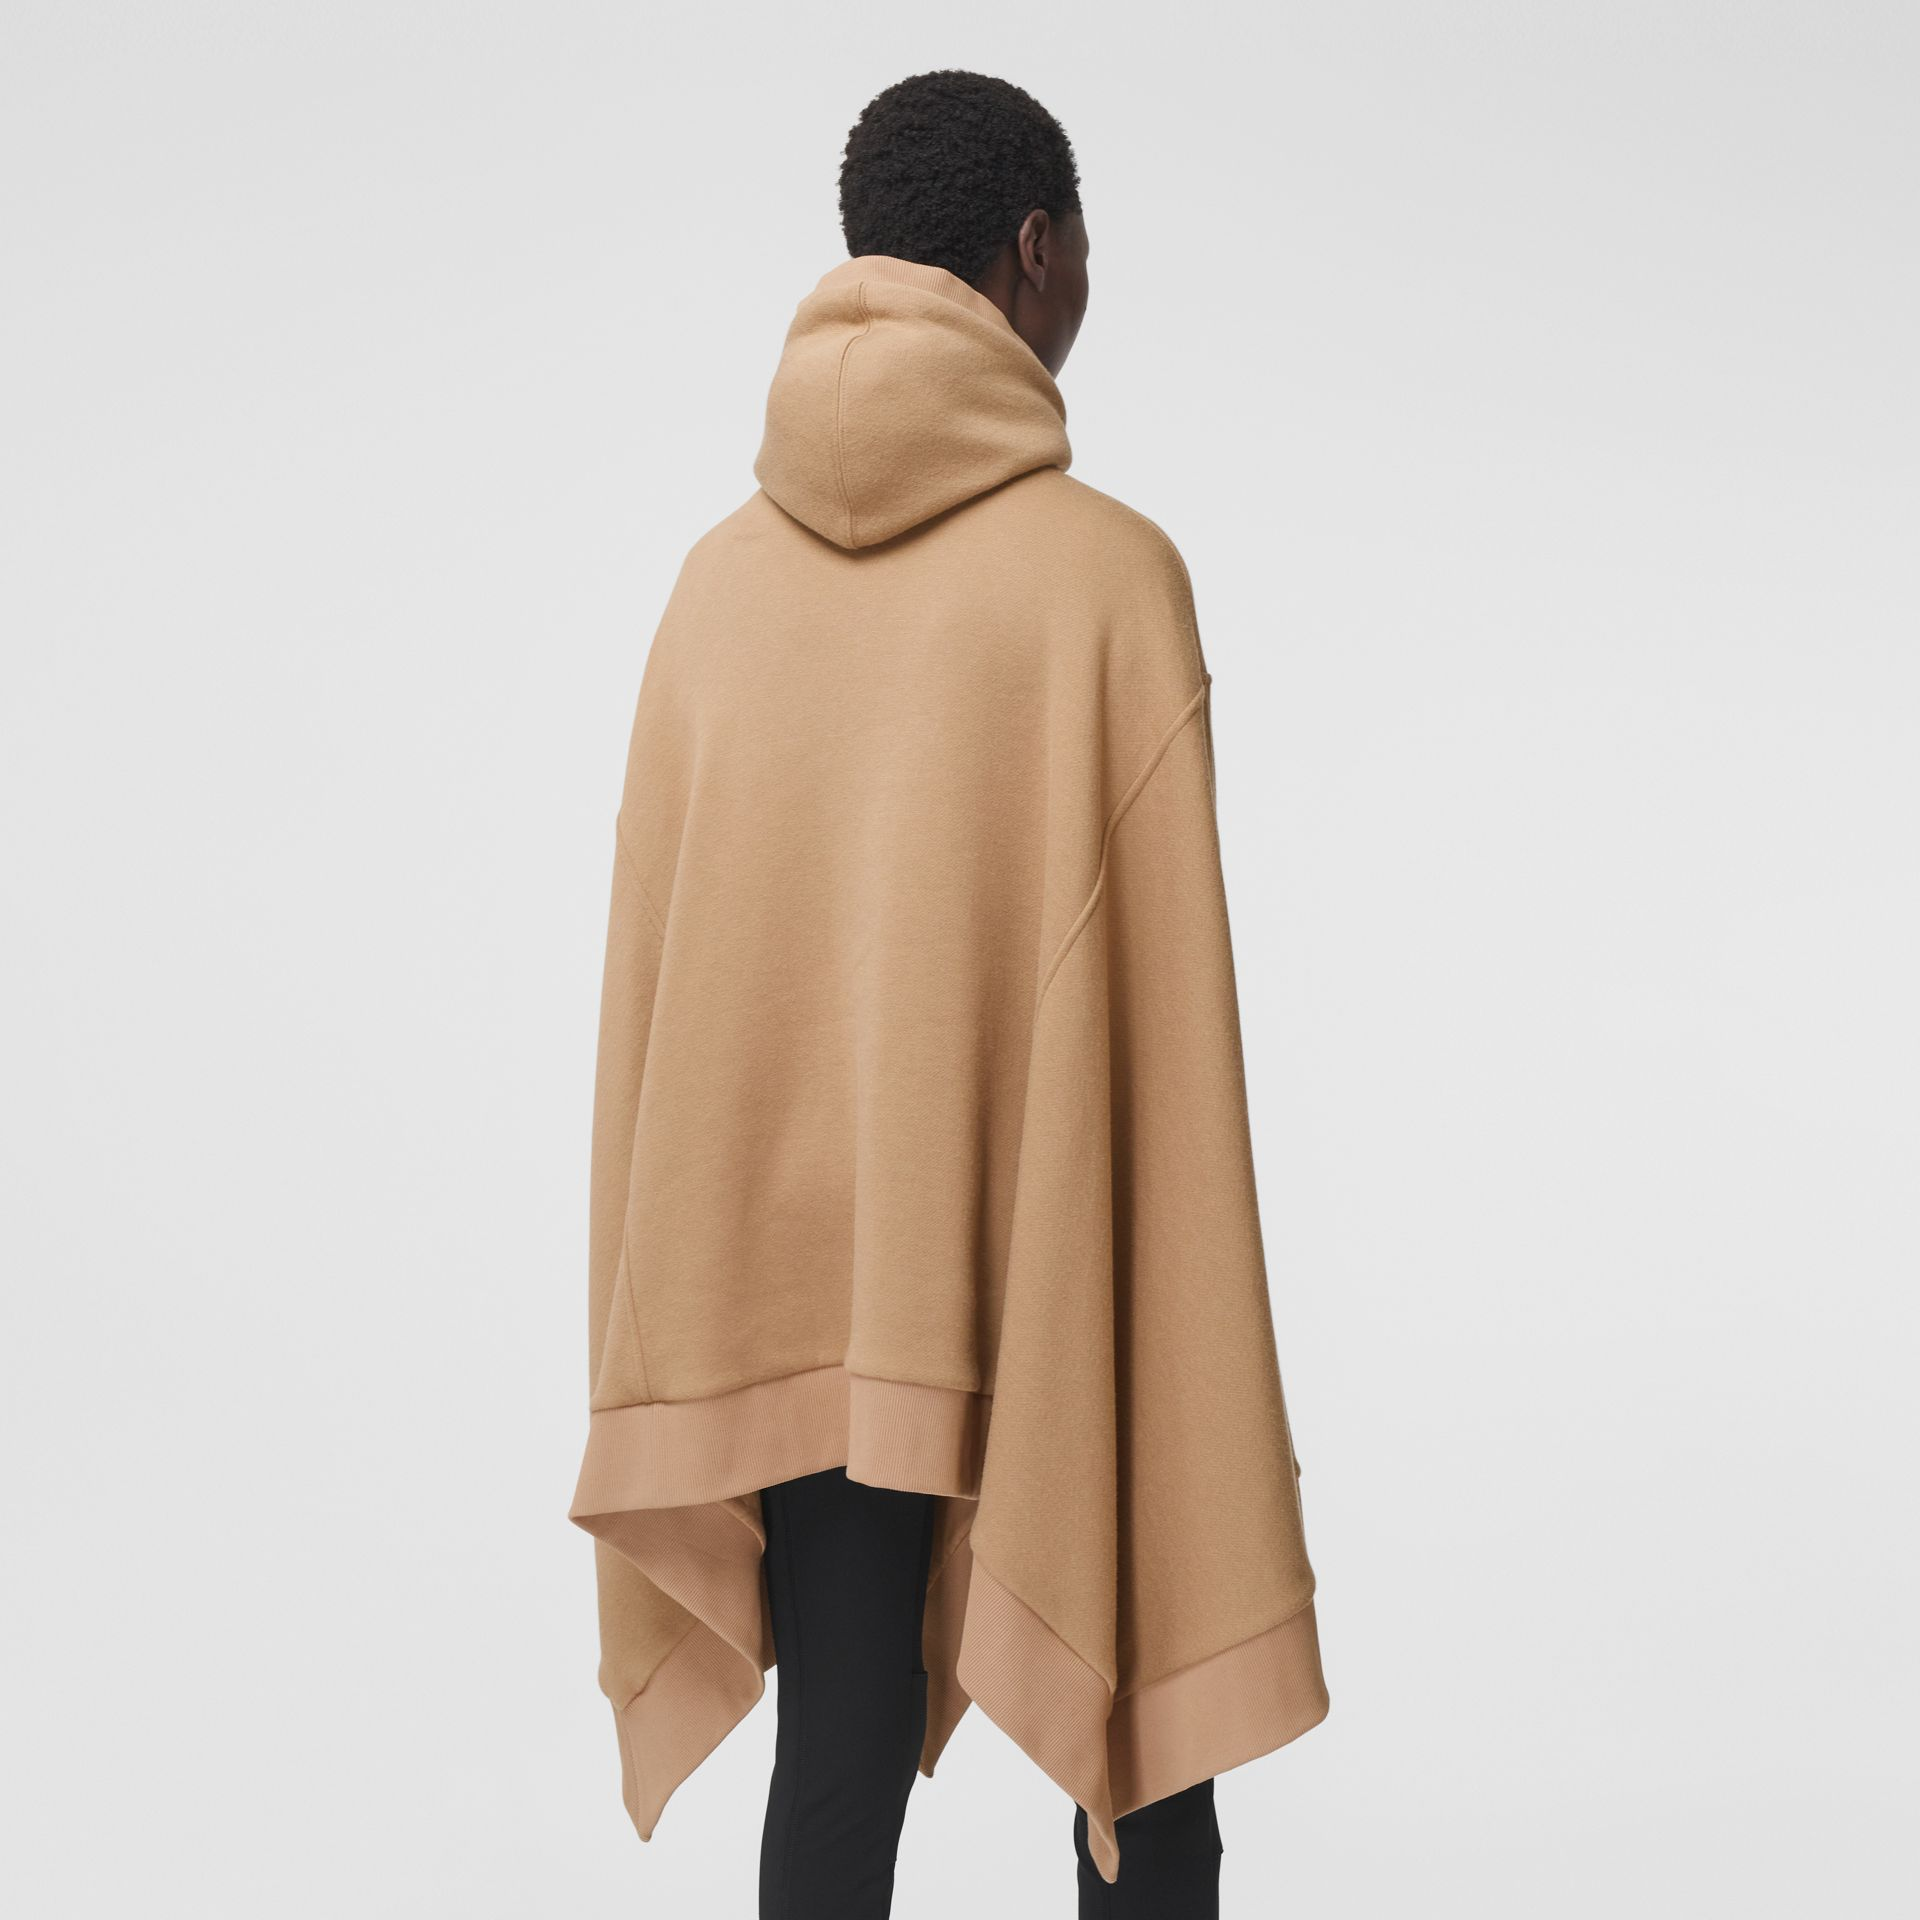 Cut-out Sleeve Jersey Hooded Cape in Camel - Women | Burberry Canada - gallery image 2